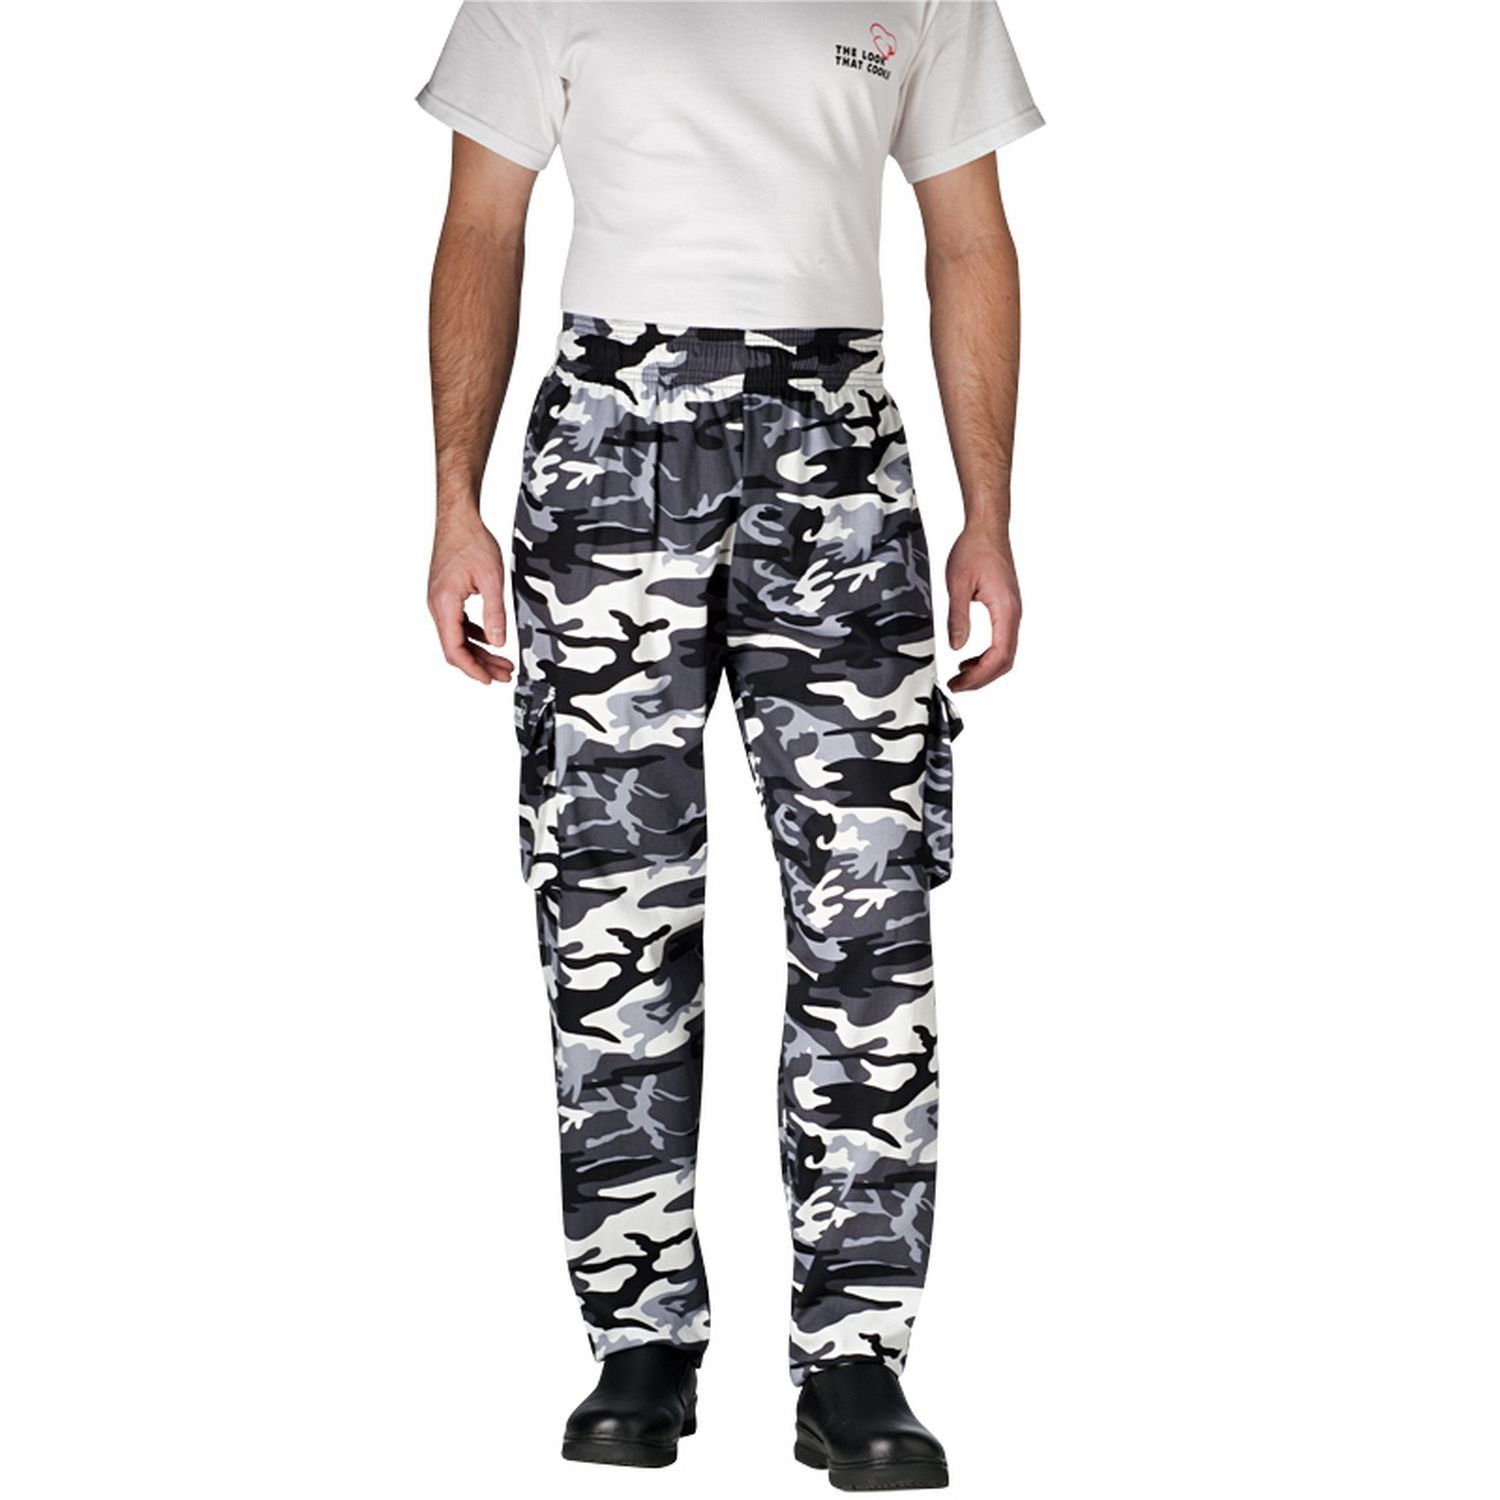 Chefwear Men's Unisex Cargo Cotton Chef Pant, Arctic Camouflage, Small